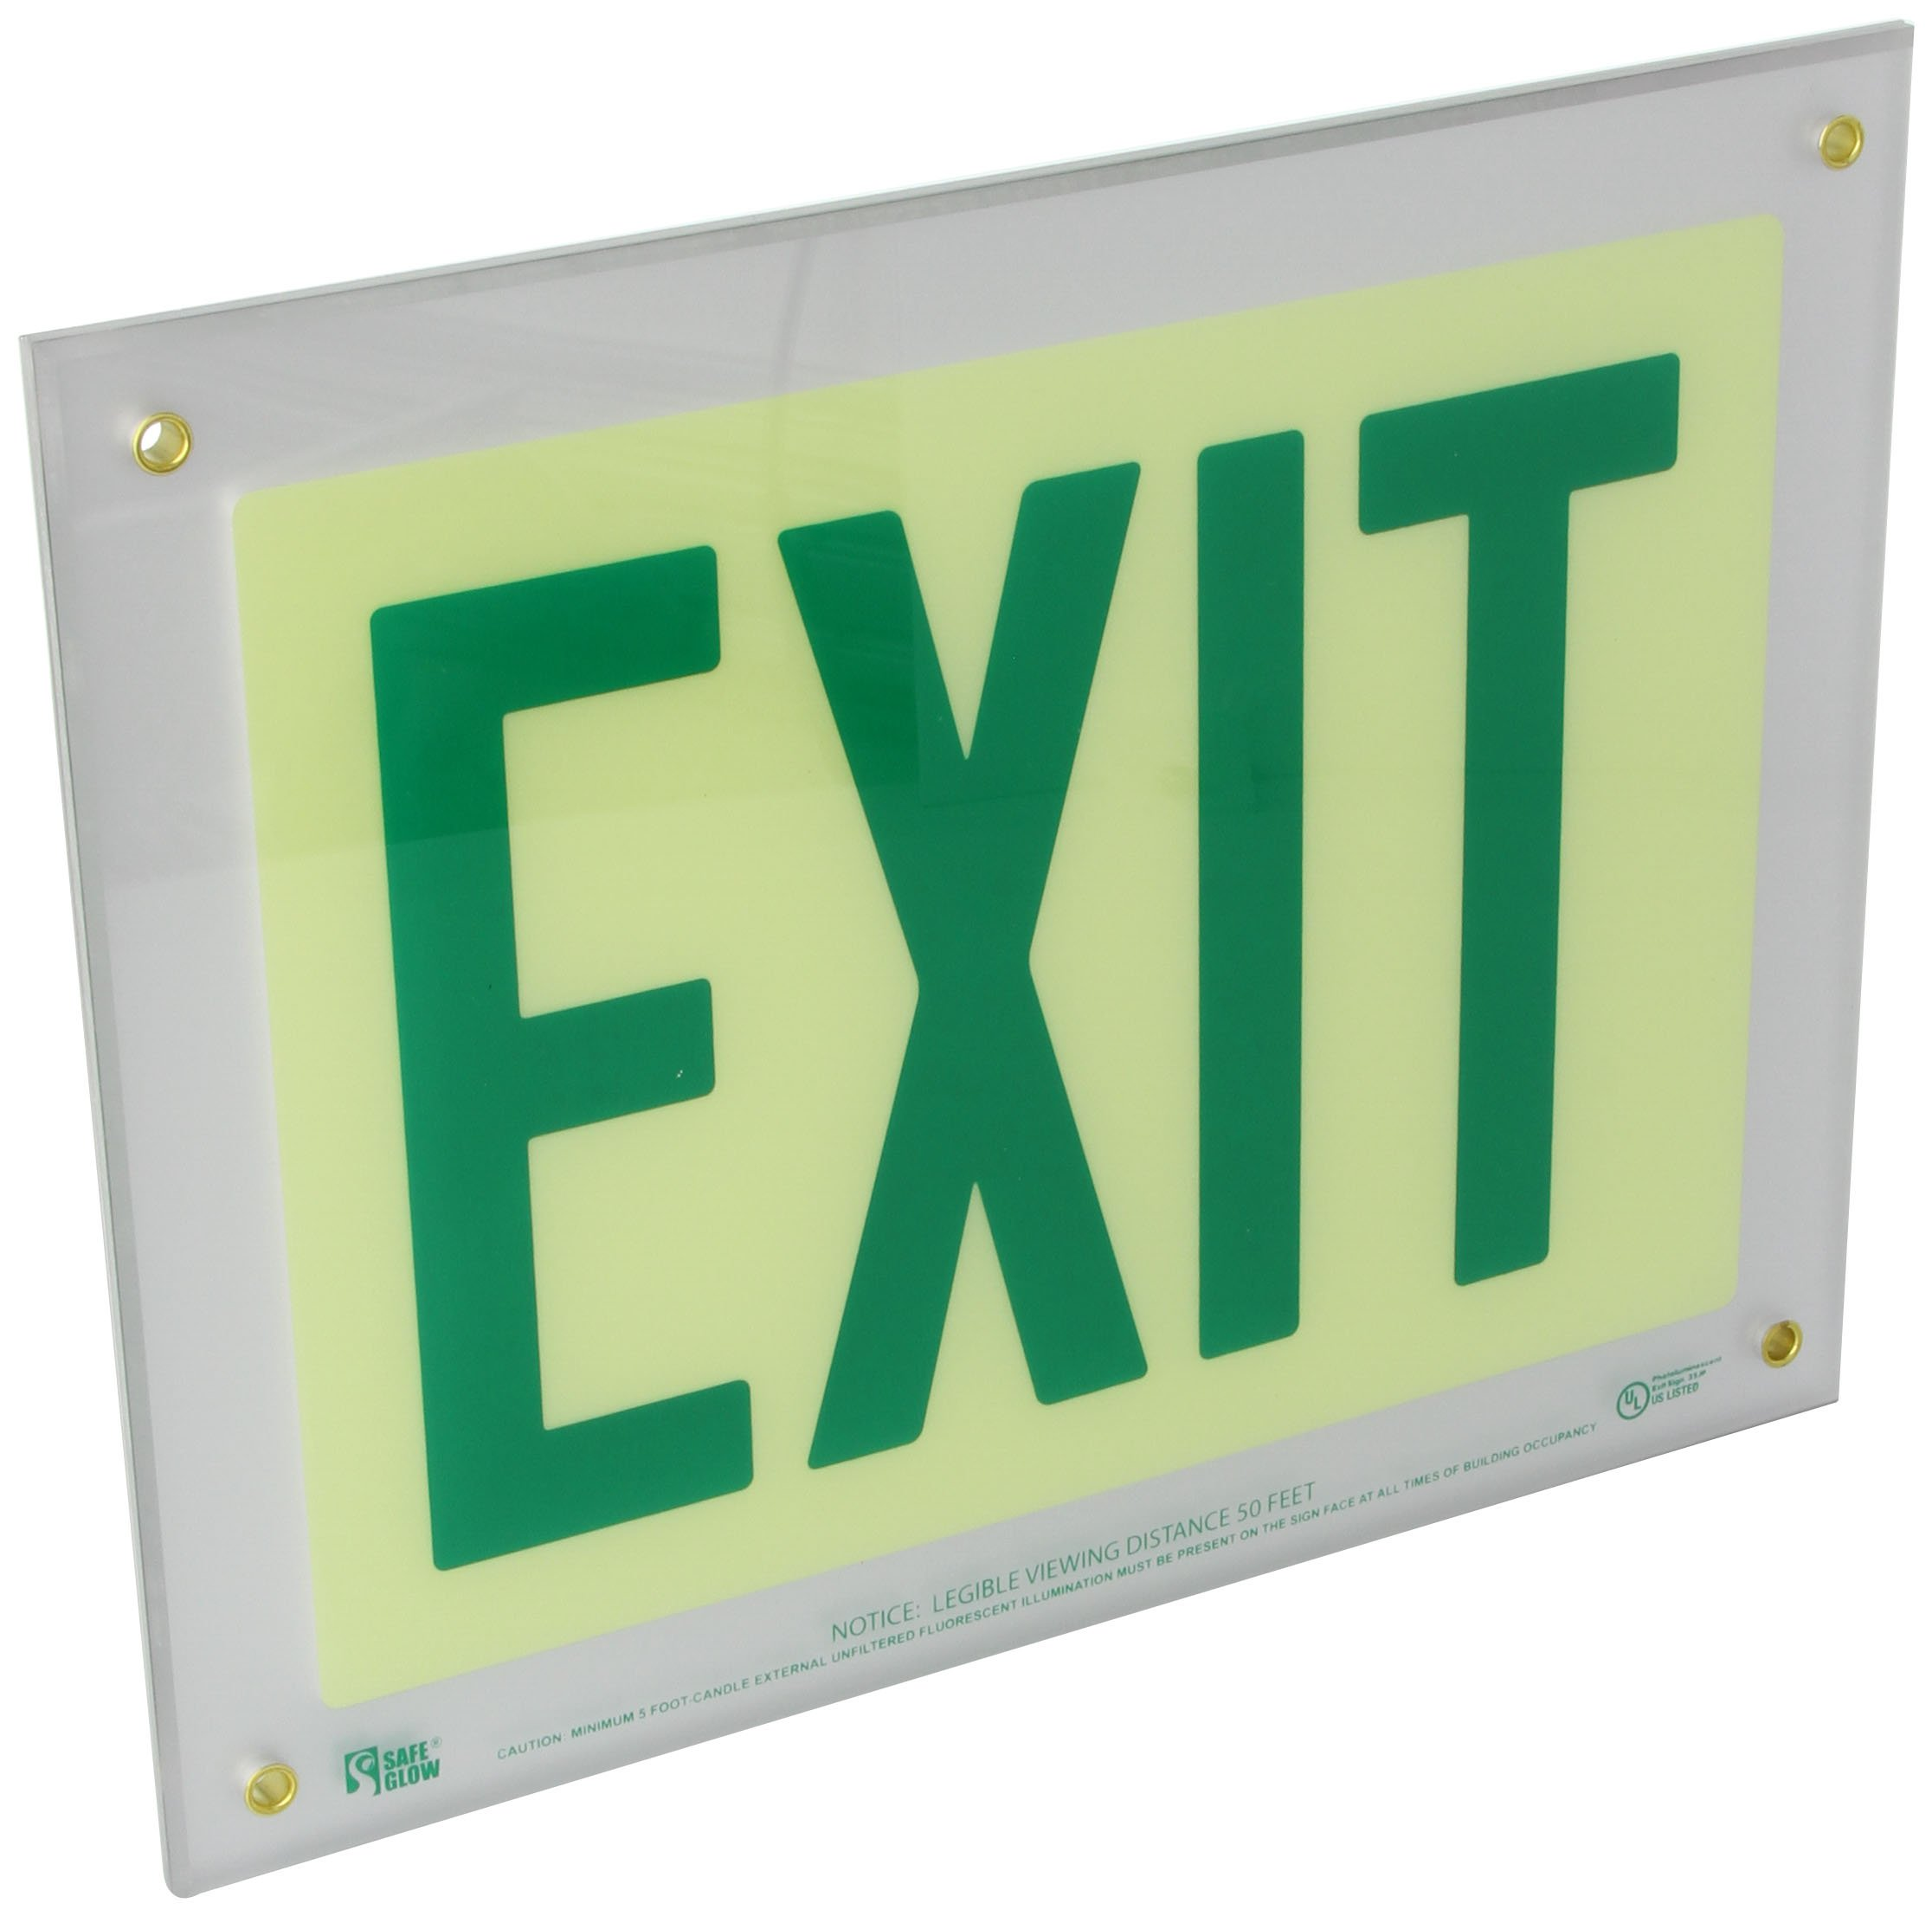 Safe Glow Photoluminescent Exit Sign, ''EXIT'', 12-19/64'' Length x 9-1/2'' Width x 1/4 '' Height, Wall Mount (Pack of 1)